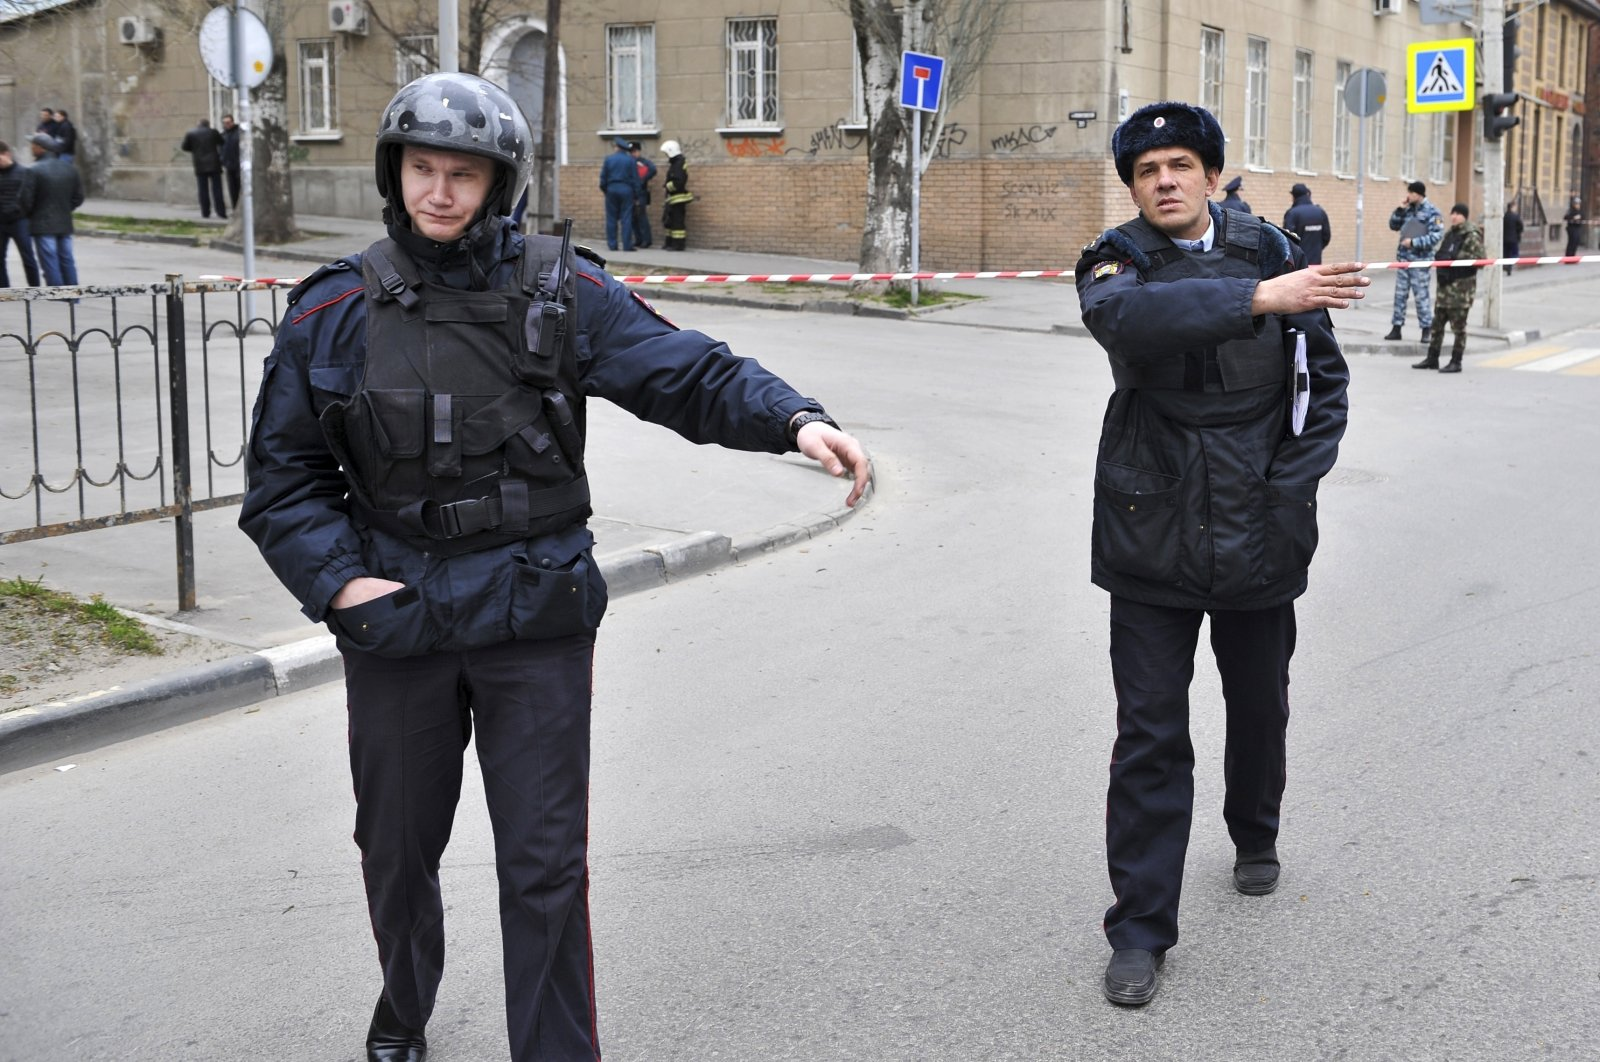 In this file photo, police officers cordon off a street after an explosion occurred in the southern Russian city of Rostov-on-Don, April 6, 2017. (AP File Photo)